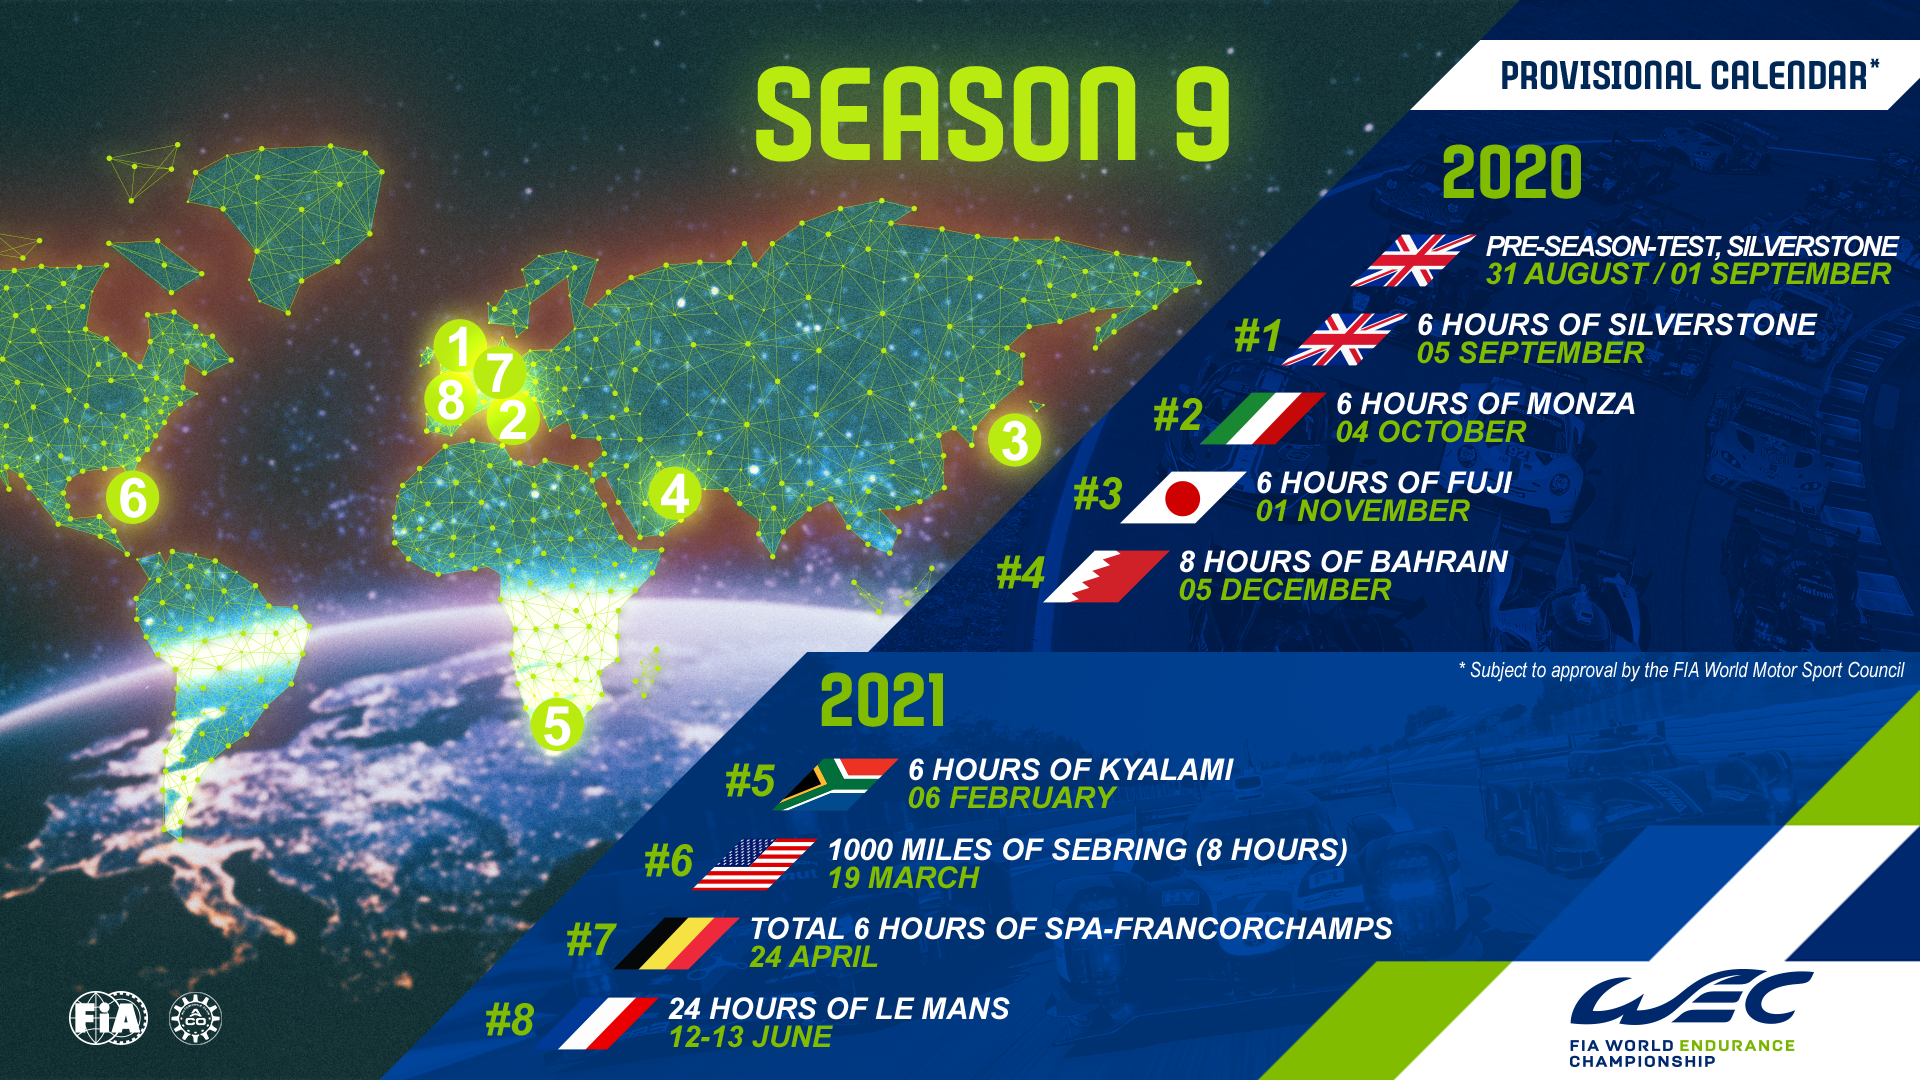 2020 2021 FIA WEC provisional calendar revealed   FIA World Endurance